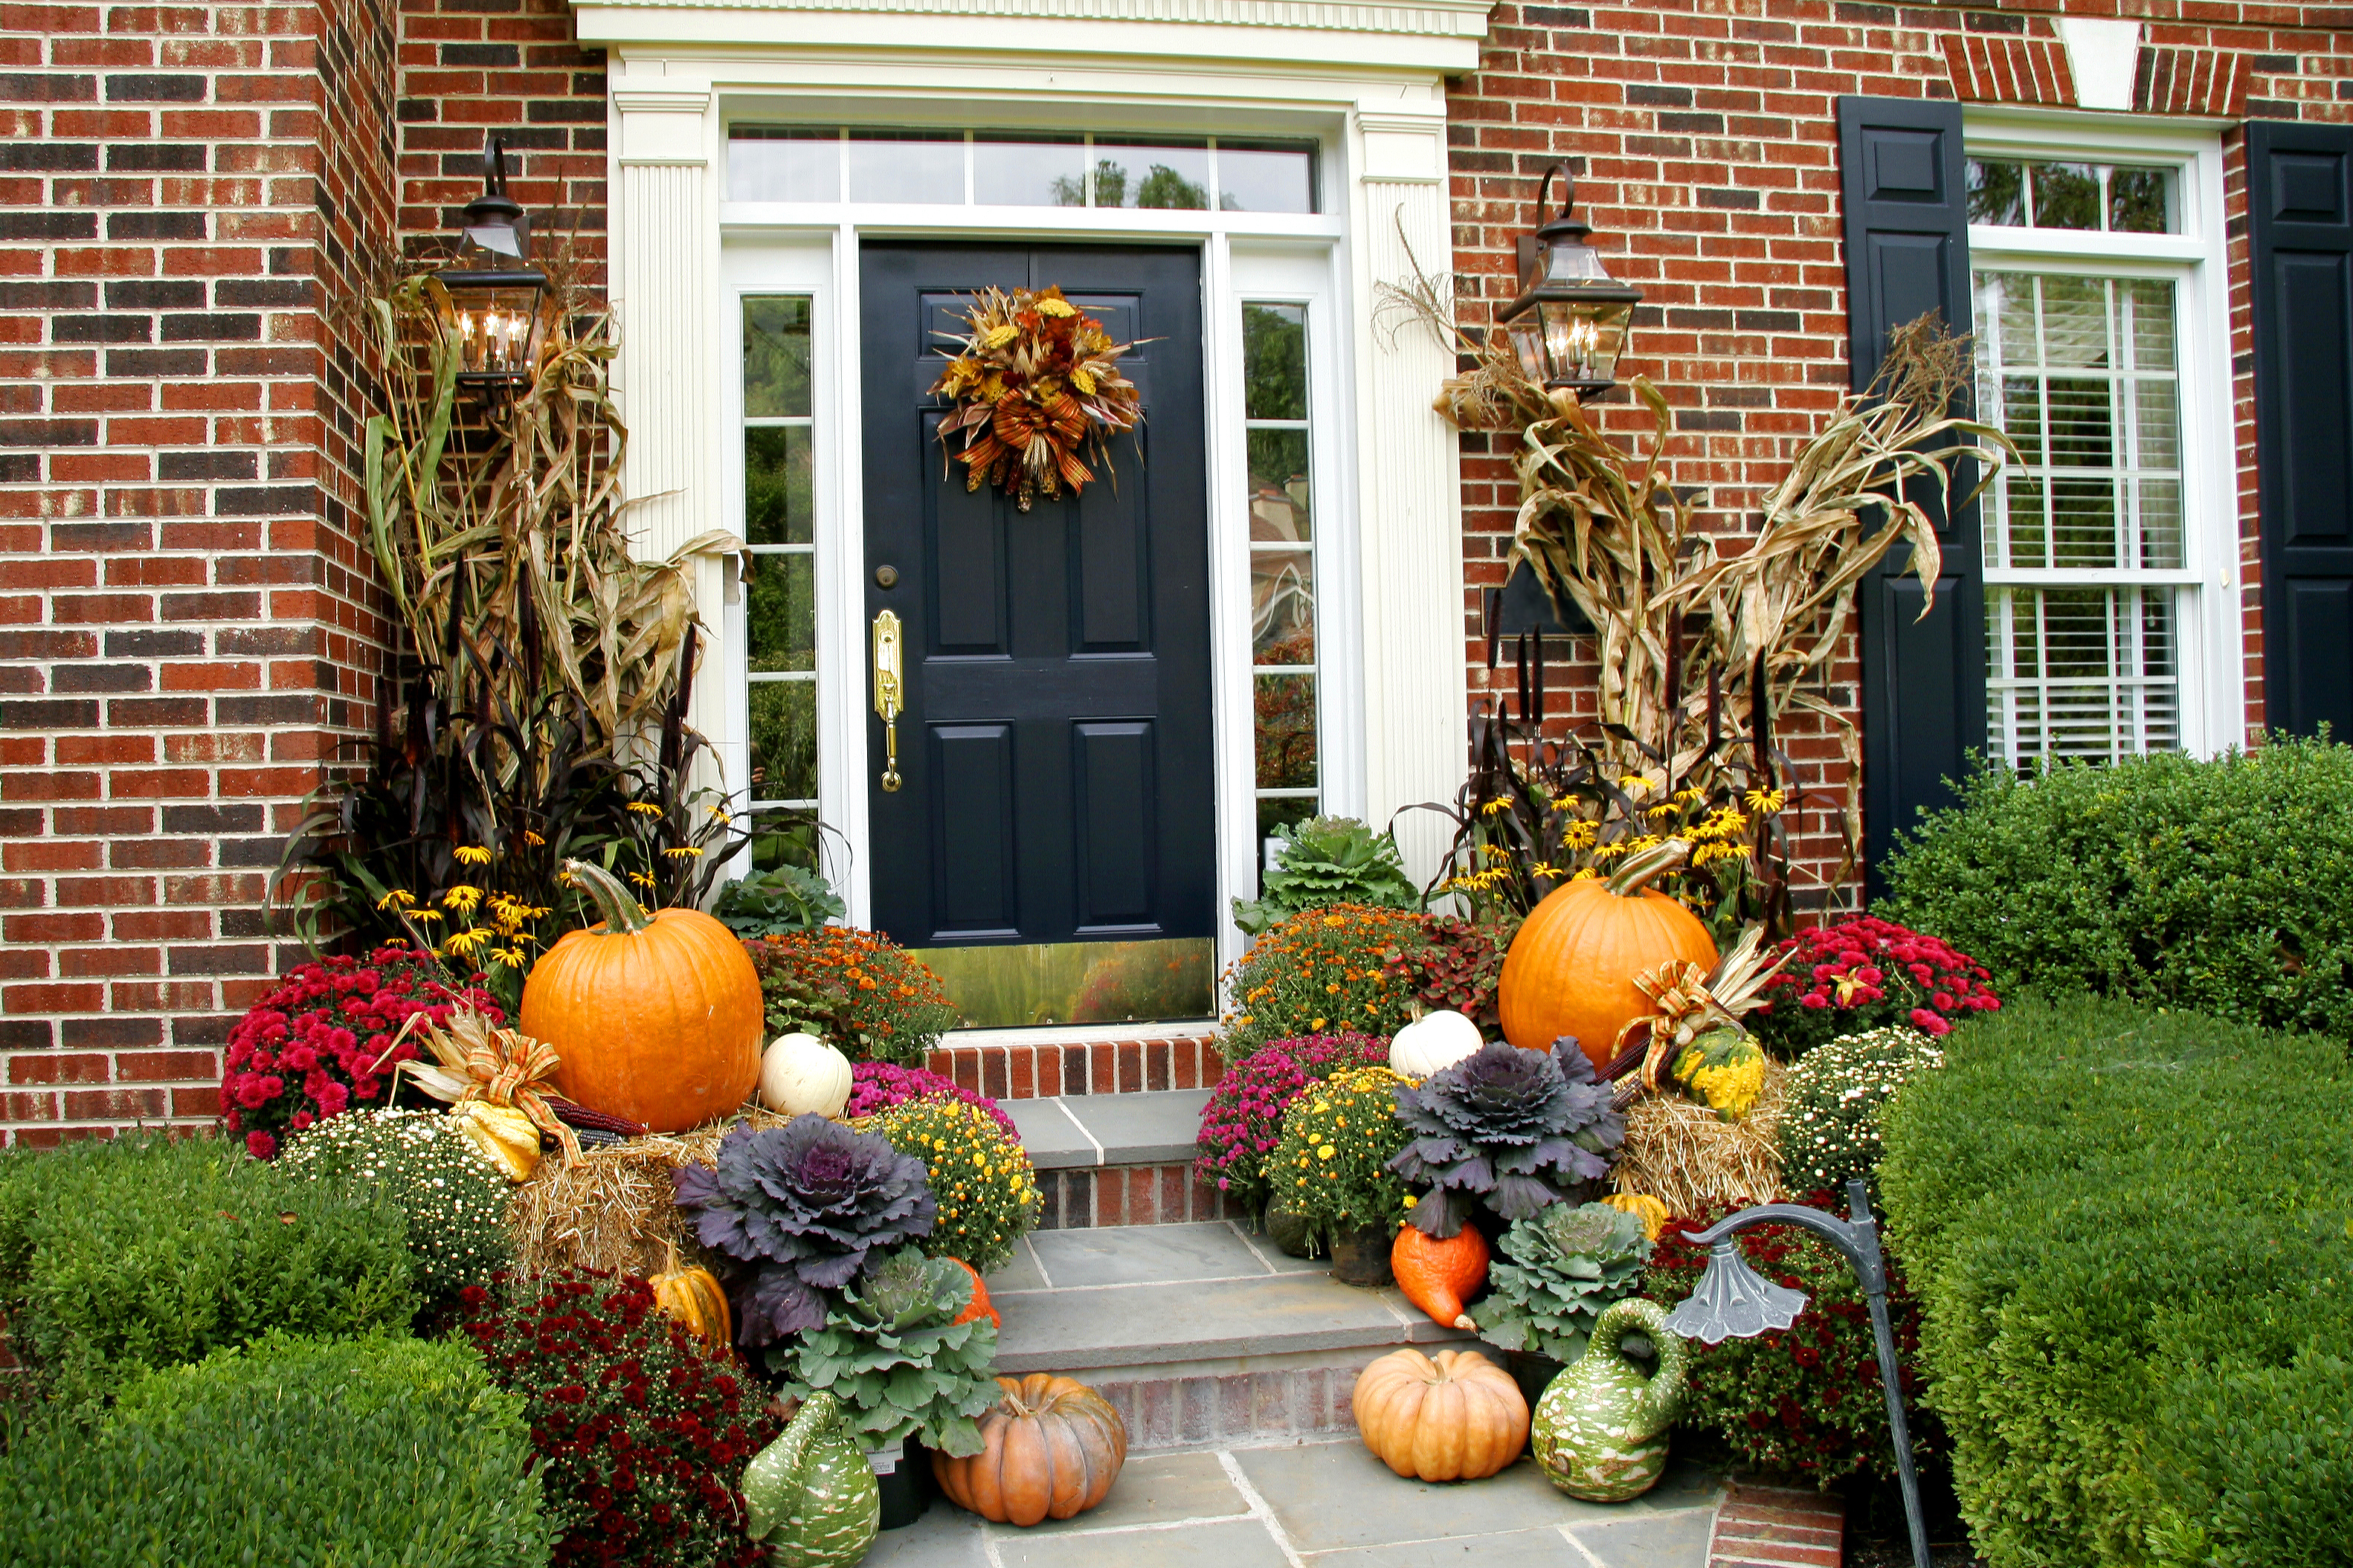 Fall decorating ideas archives lombardo homes for Pictures of fall decorations for outdoors